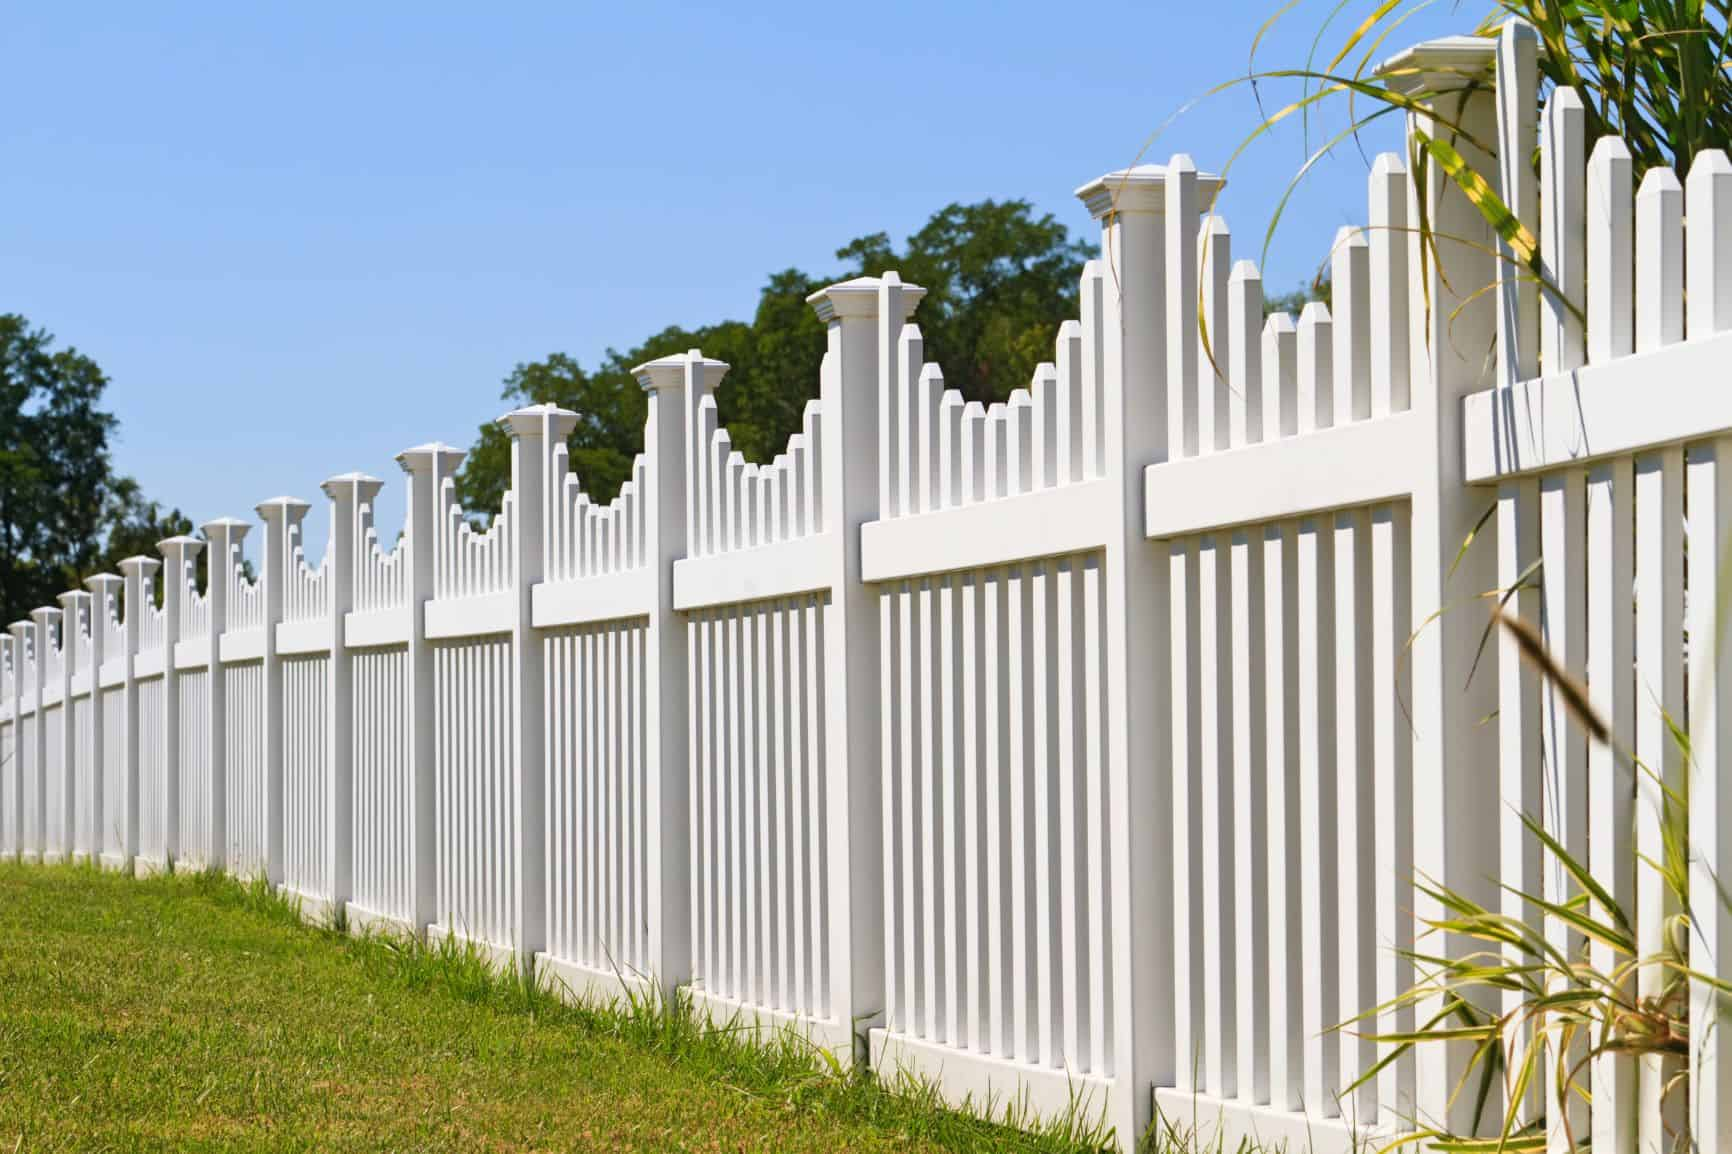 Fence Repair Austin Tx